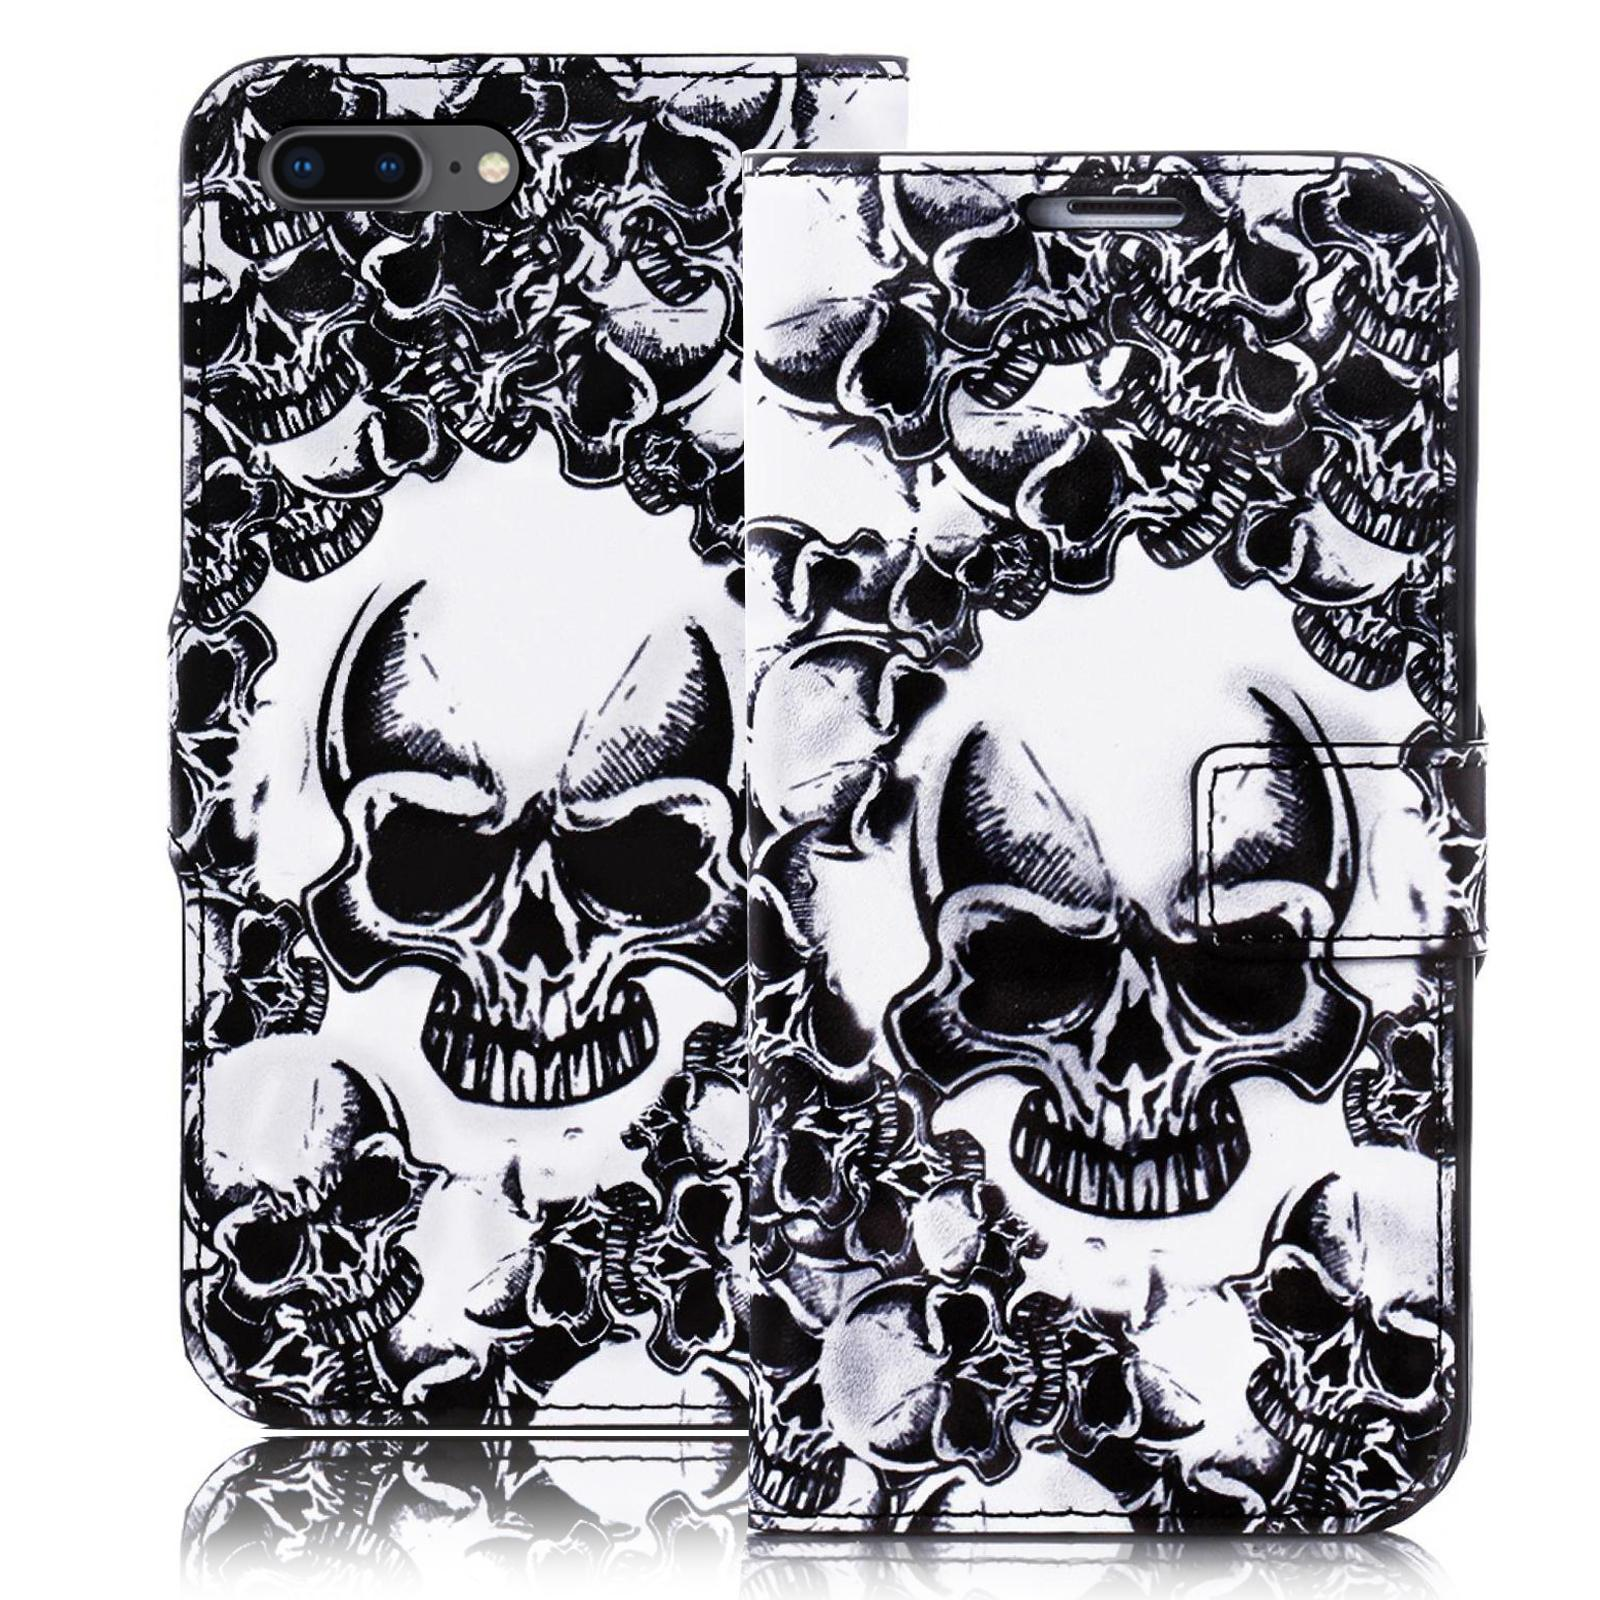 skull style totenkopf design handy tasche schutz h lle book cover flip case etui ebay. Black Bedroom Furniture Sets. Home Design Ideas